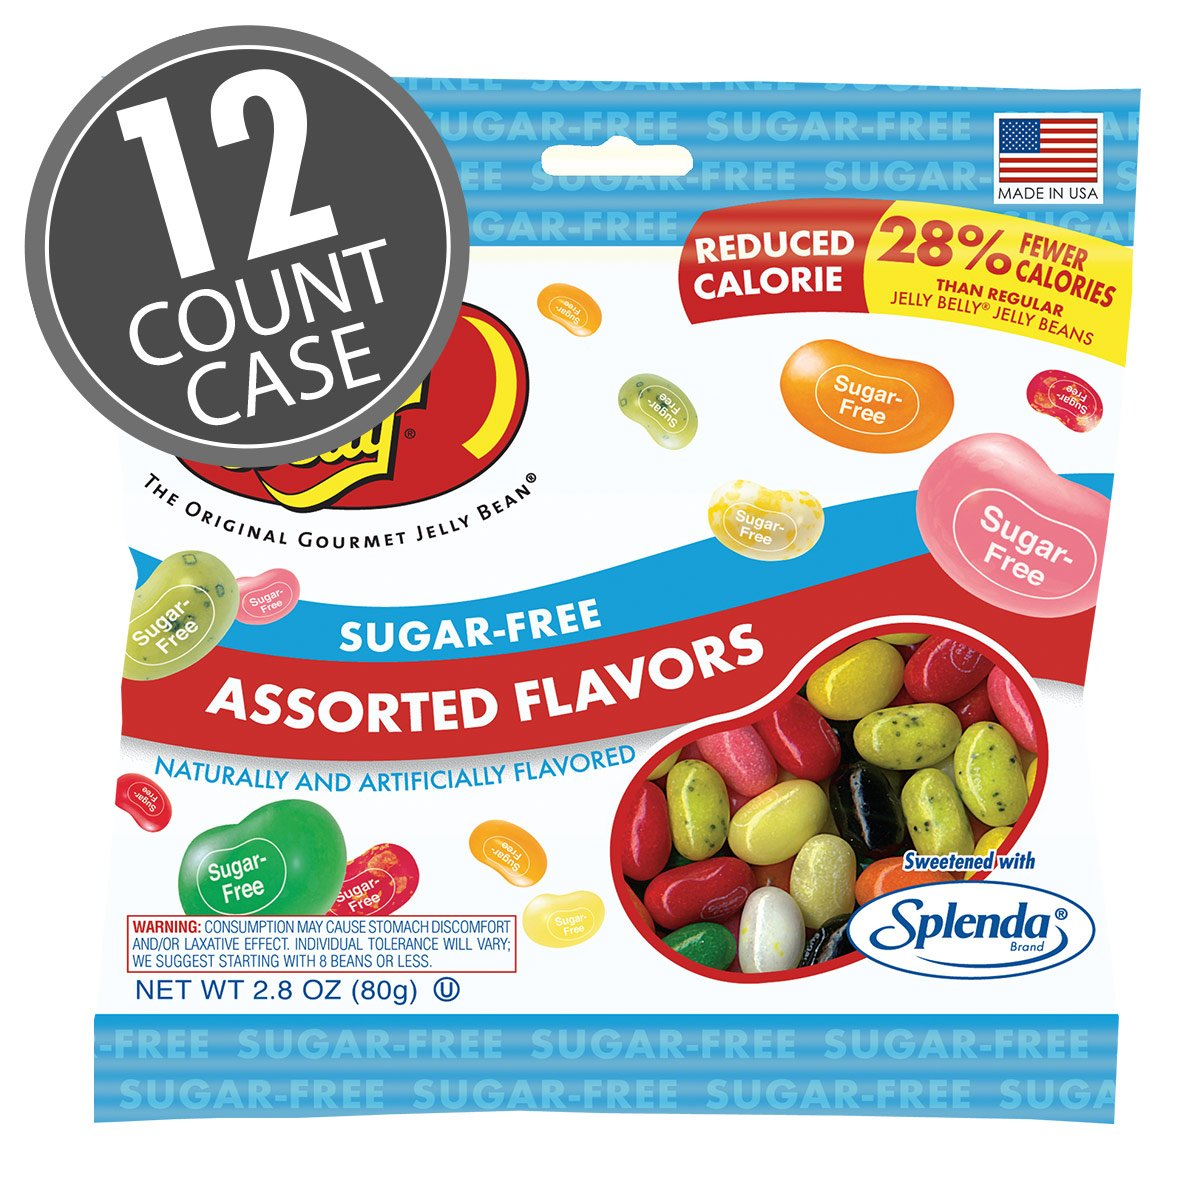 Sugar-Free Jelly Belly Jelly Beans - 12 x 2.8 Ounce Bags - Genuine, Official, Straight from the Source by Jelly Belly